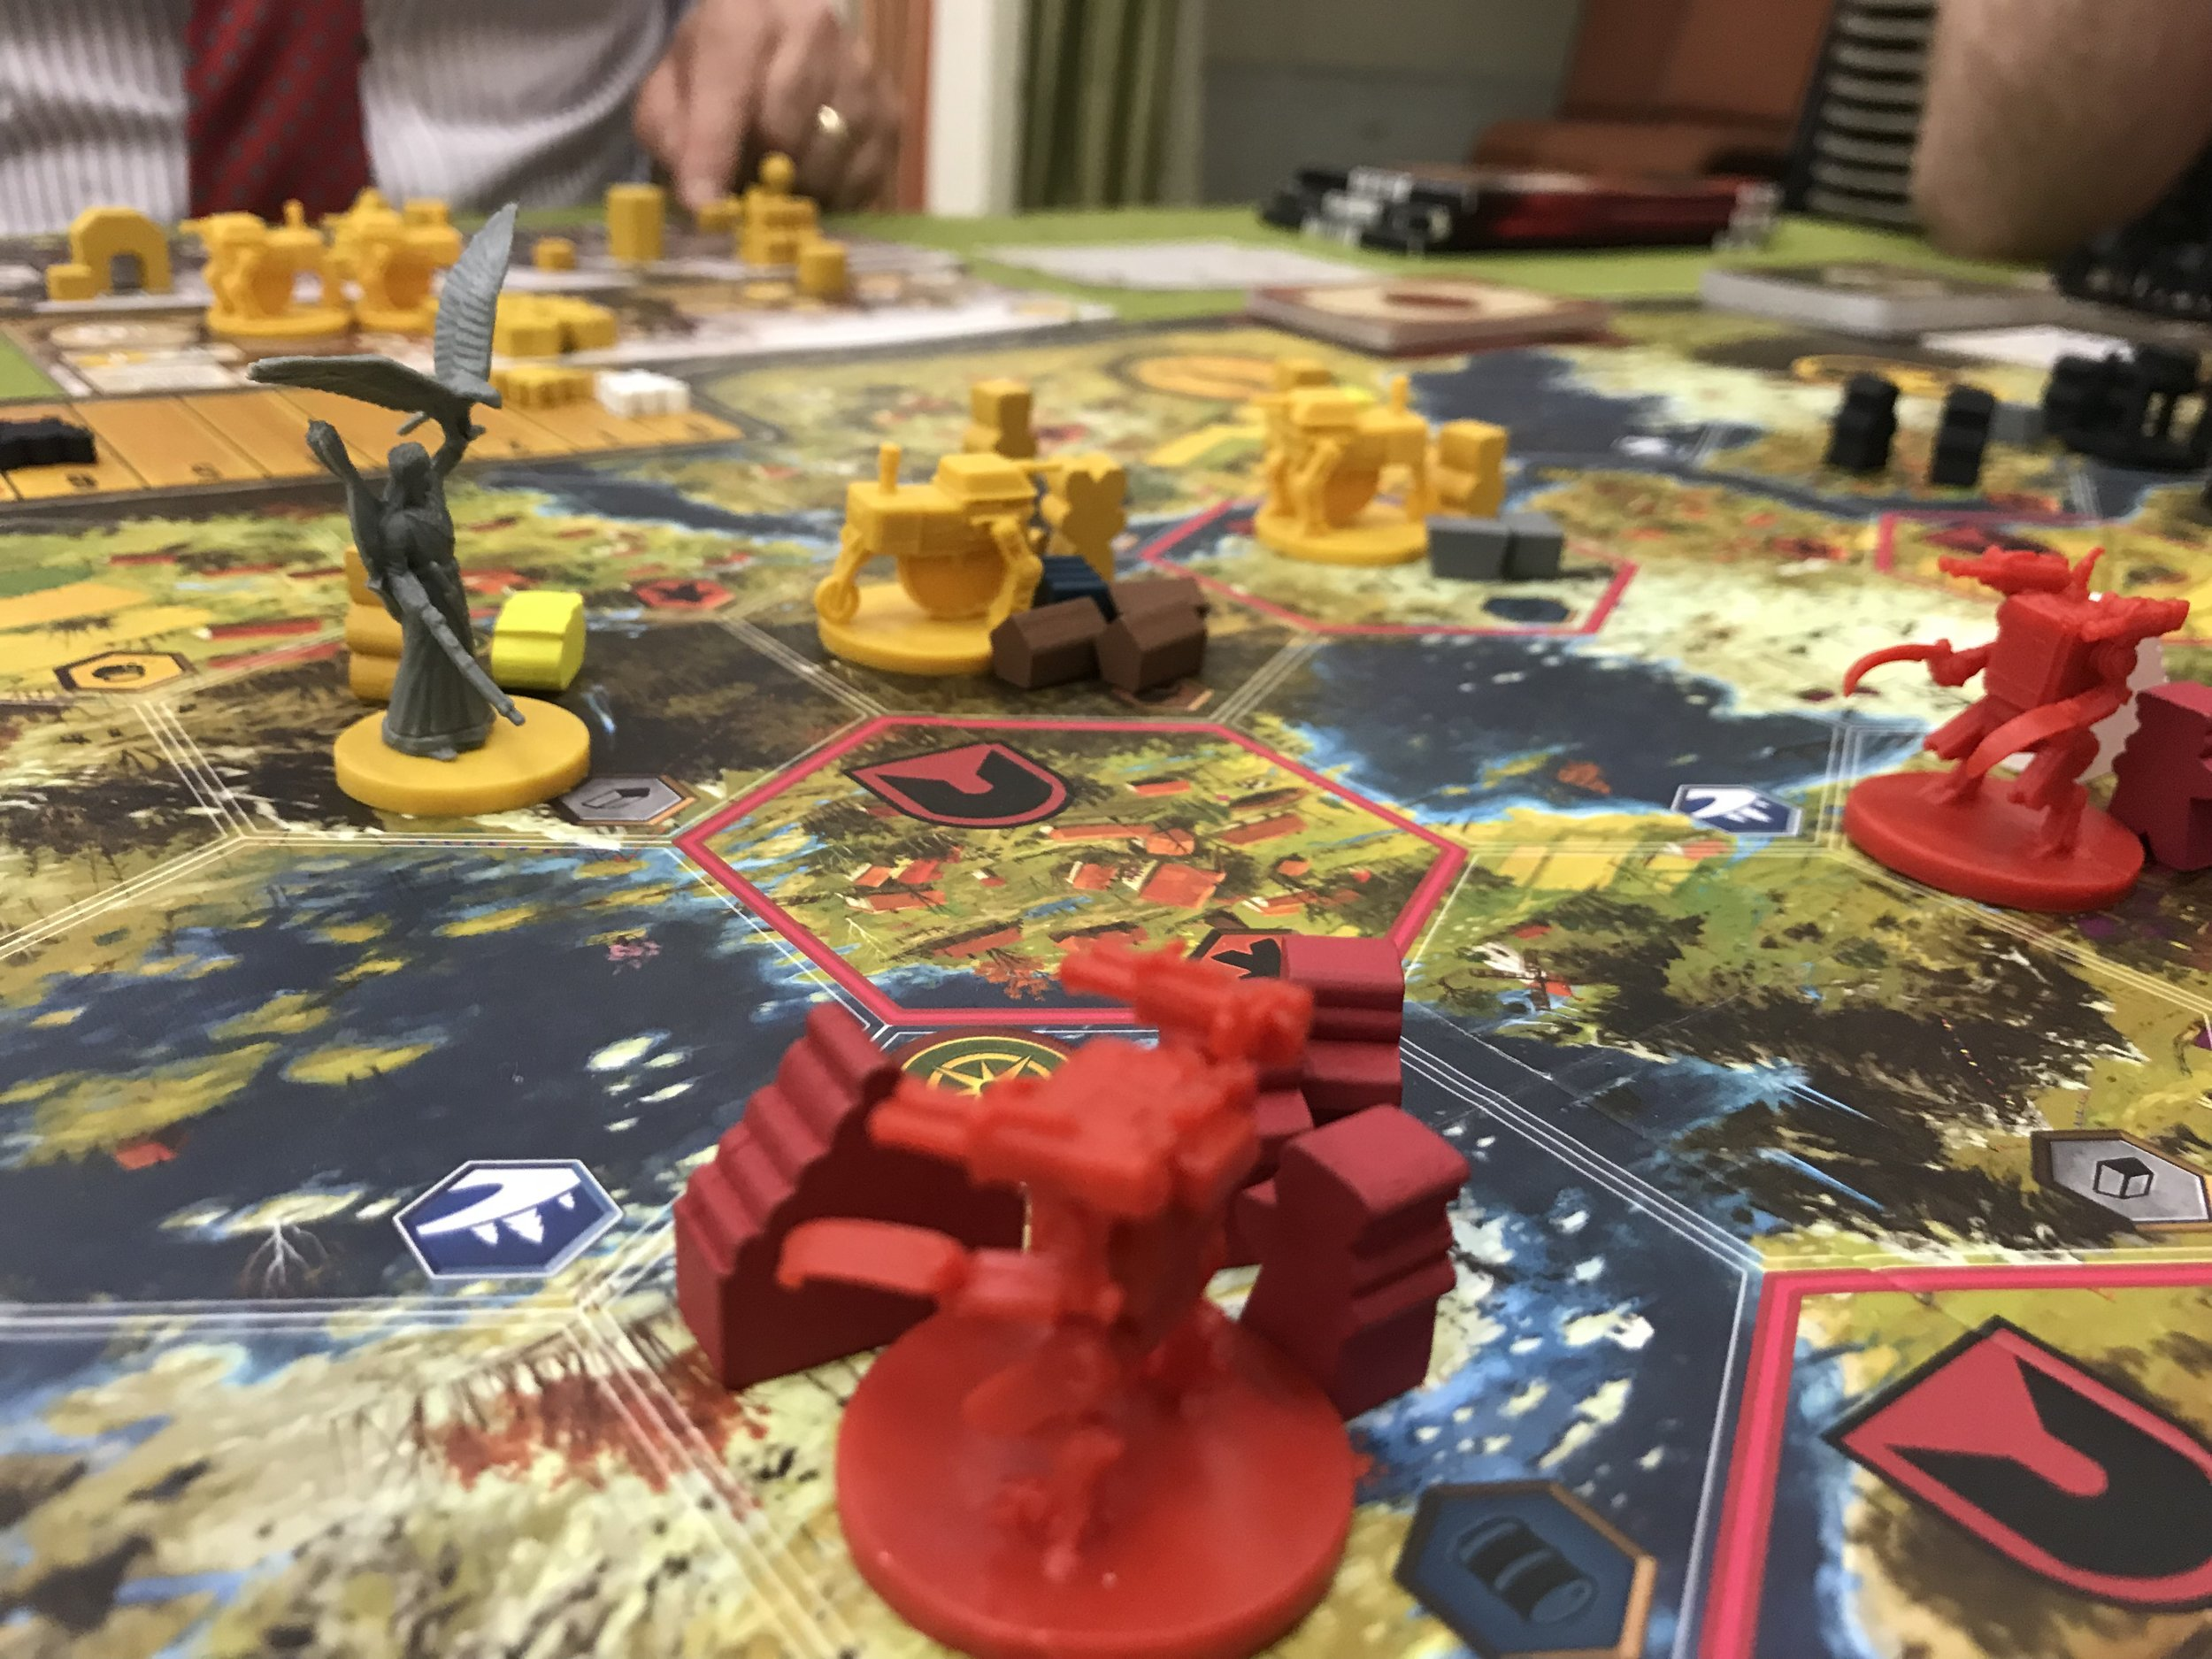 Scythe: out Farm & fight your NEIGHBOR for victory - Set in an alternate 1920's reality, Scythe is beautifully designed Euro game allowing your to cultivate your land in order to expand and build mechs to destroy your foes. Reputation or Power, the choice is yours.